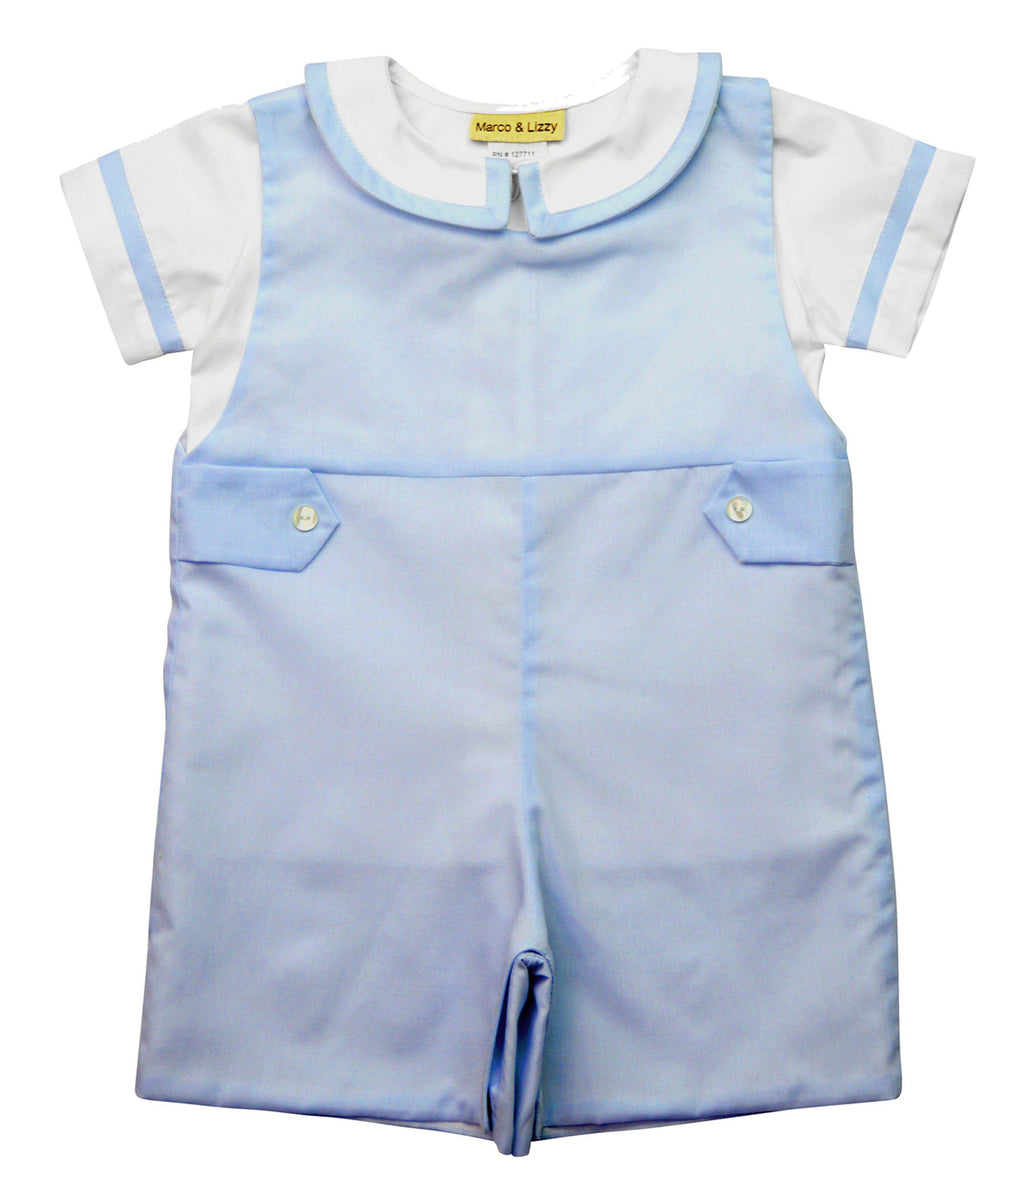 Marco & Lizzy Blue Overall Baby Set